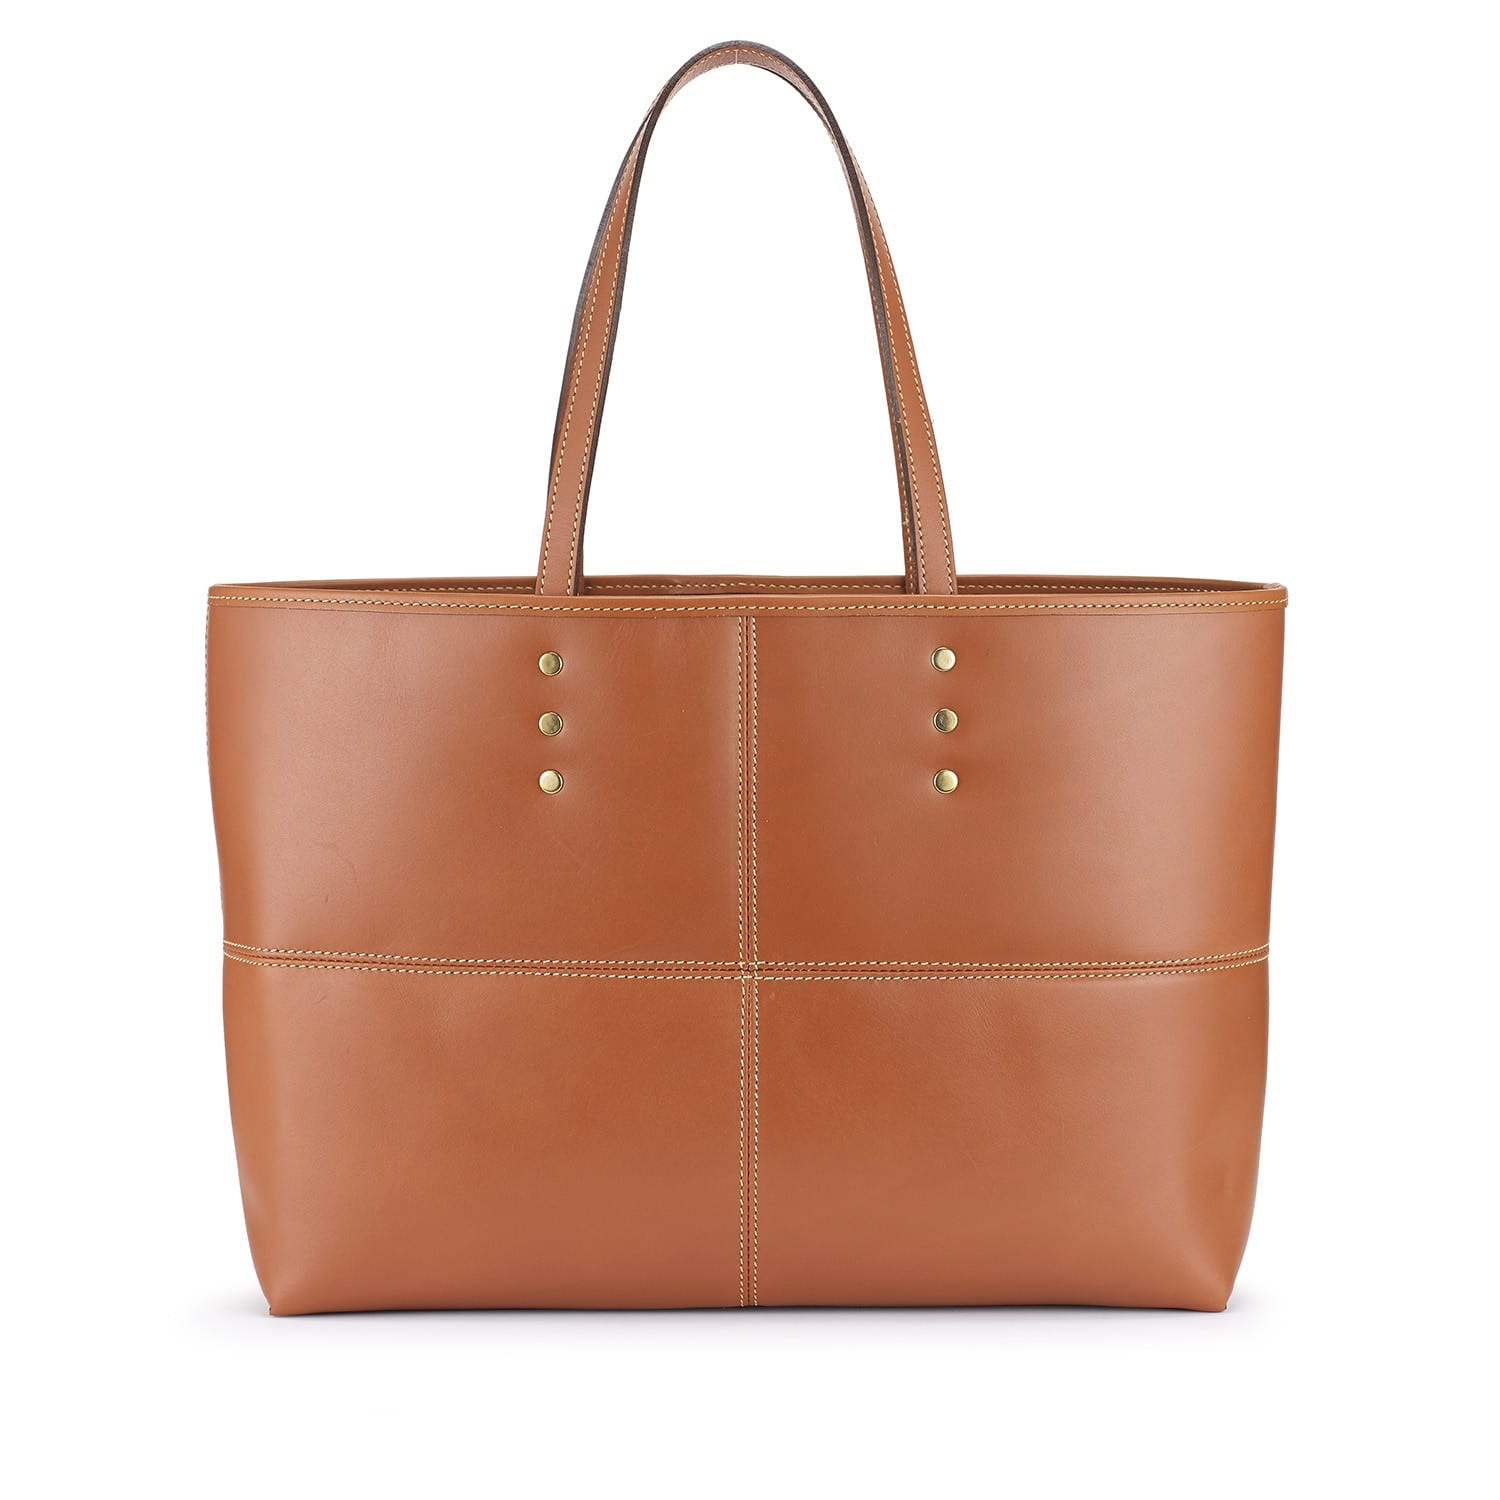 Tusting Ashton Tote bag, Leder, tan 1